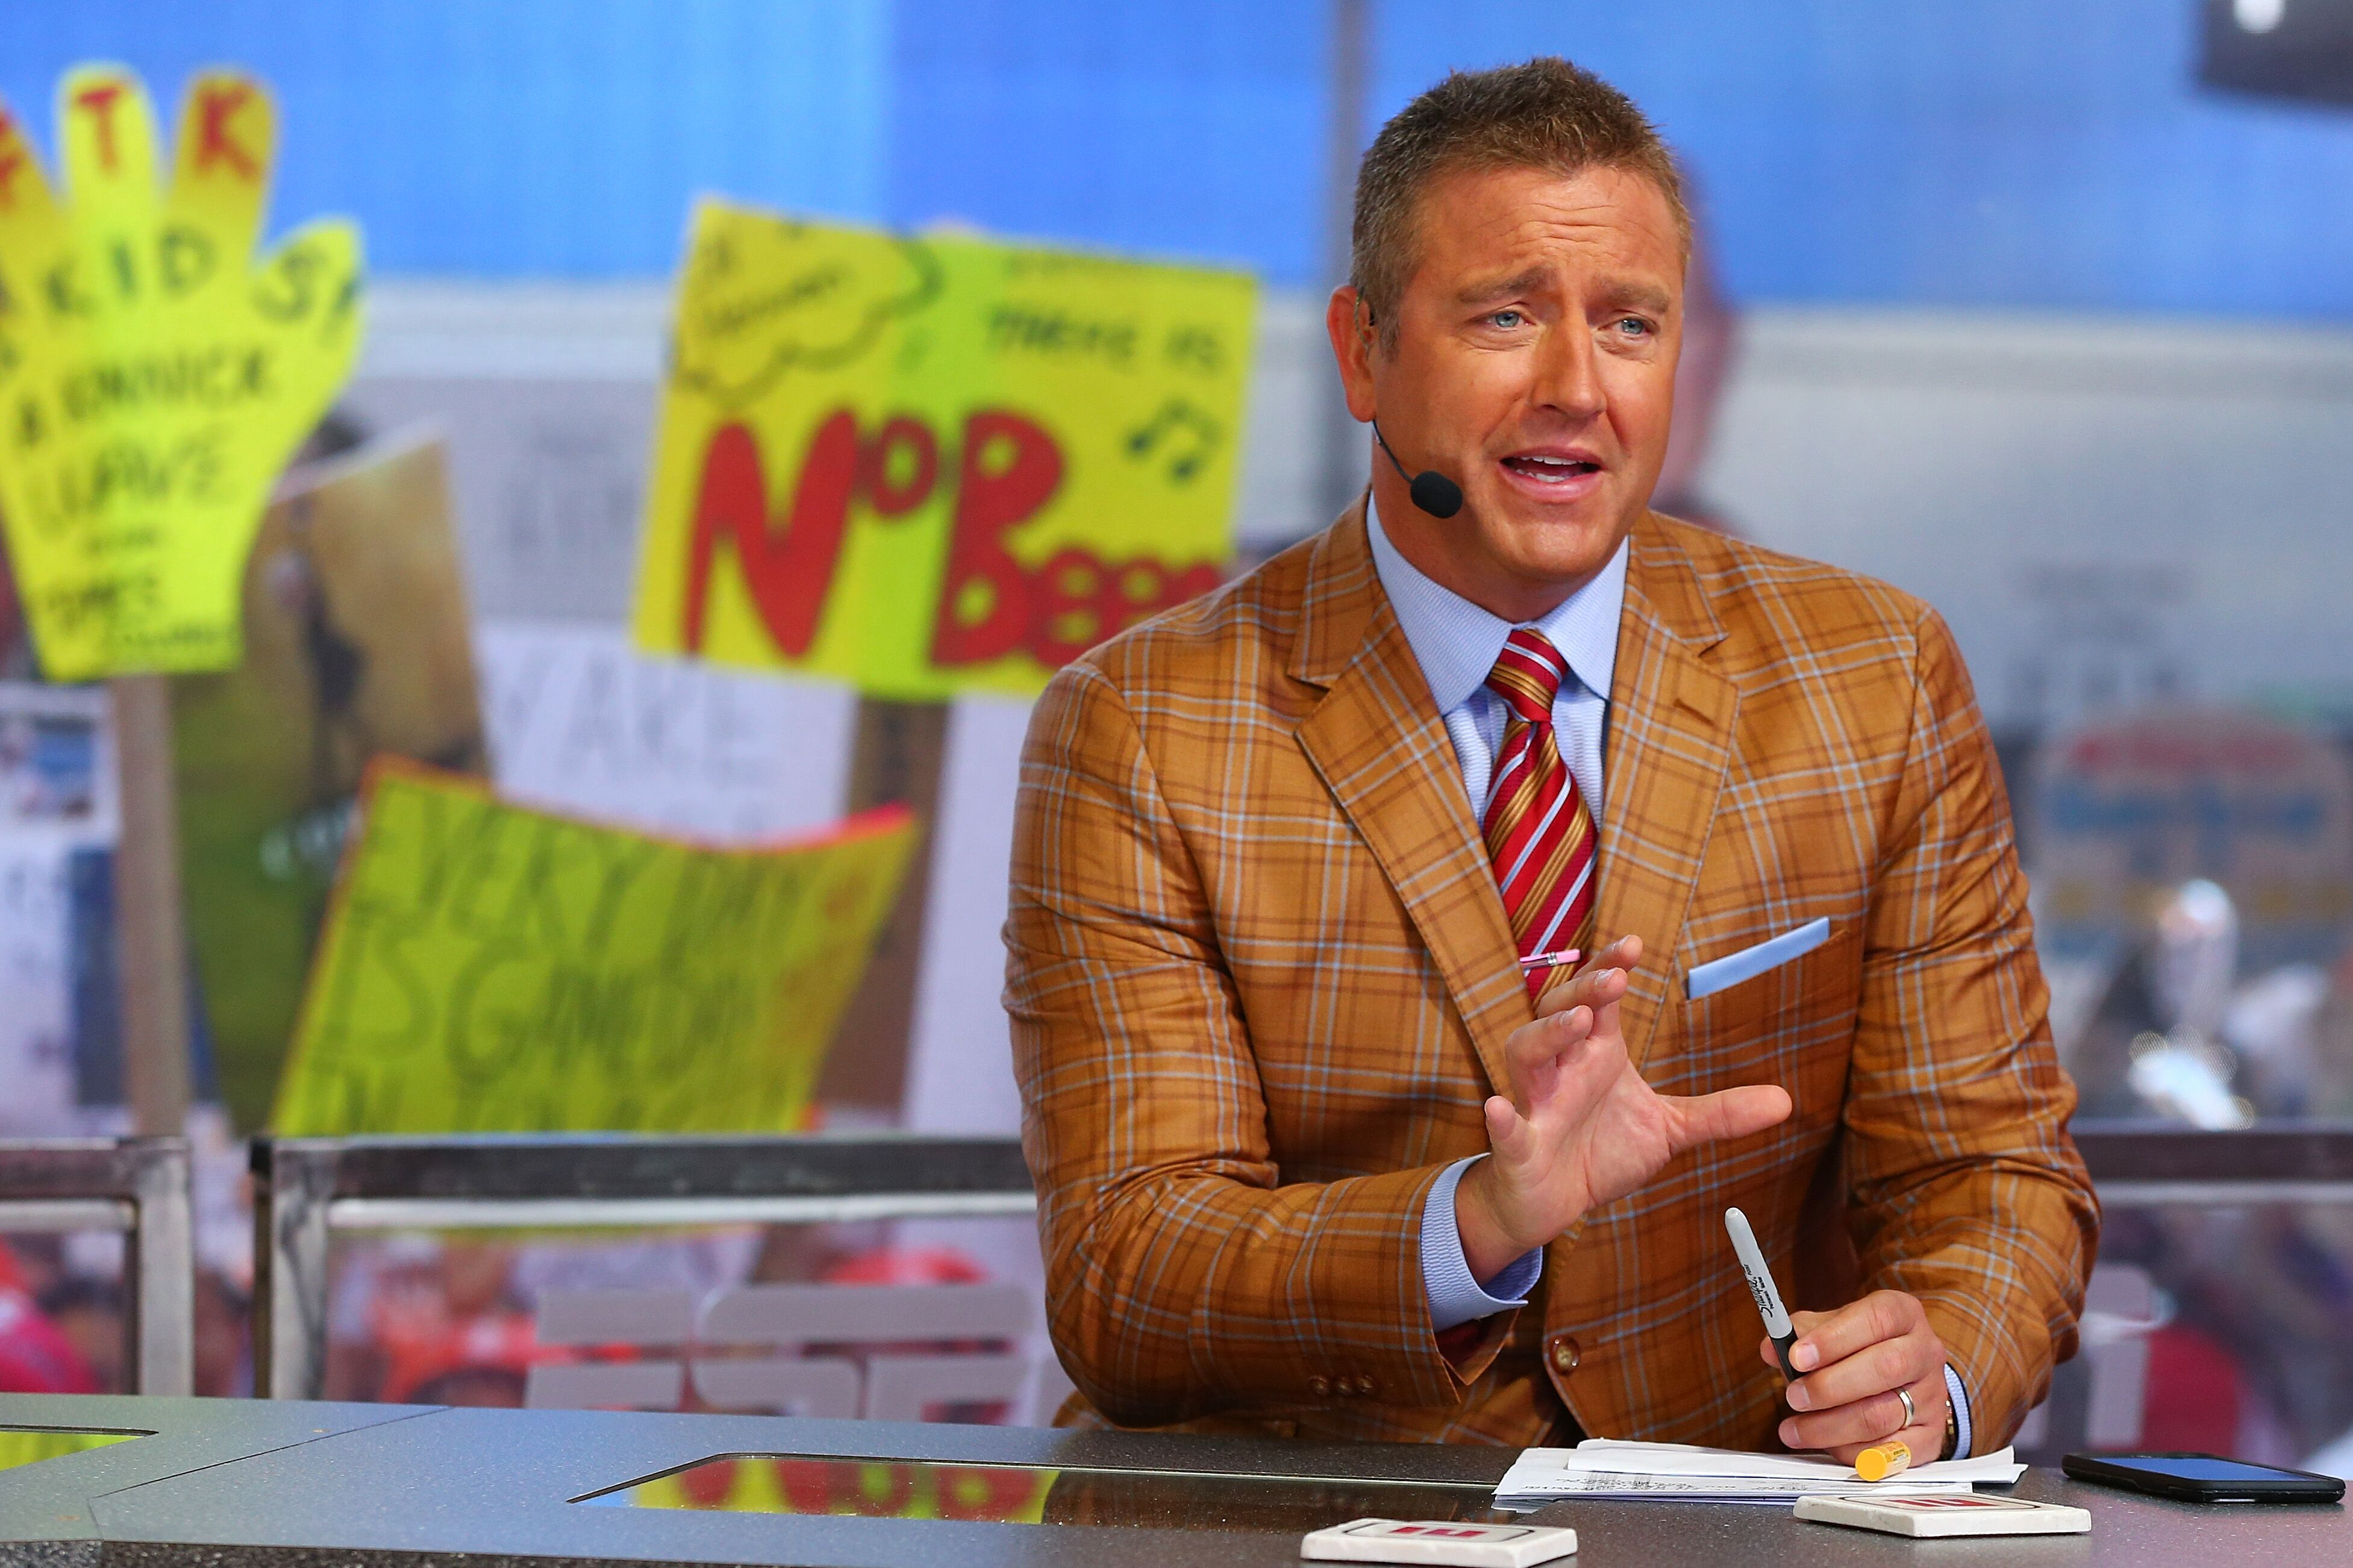 852373846-espn-college-gameday-built-by-the-home-depot-times-square.jpg